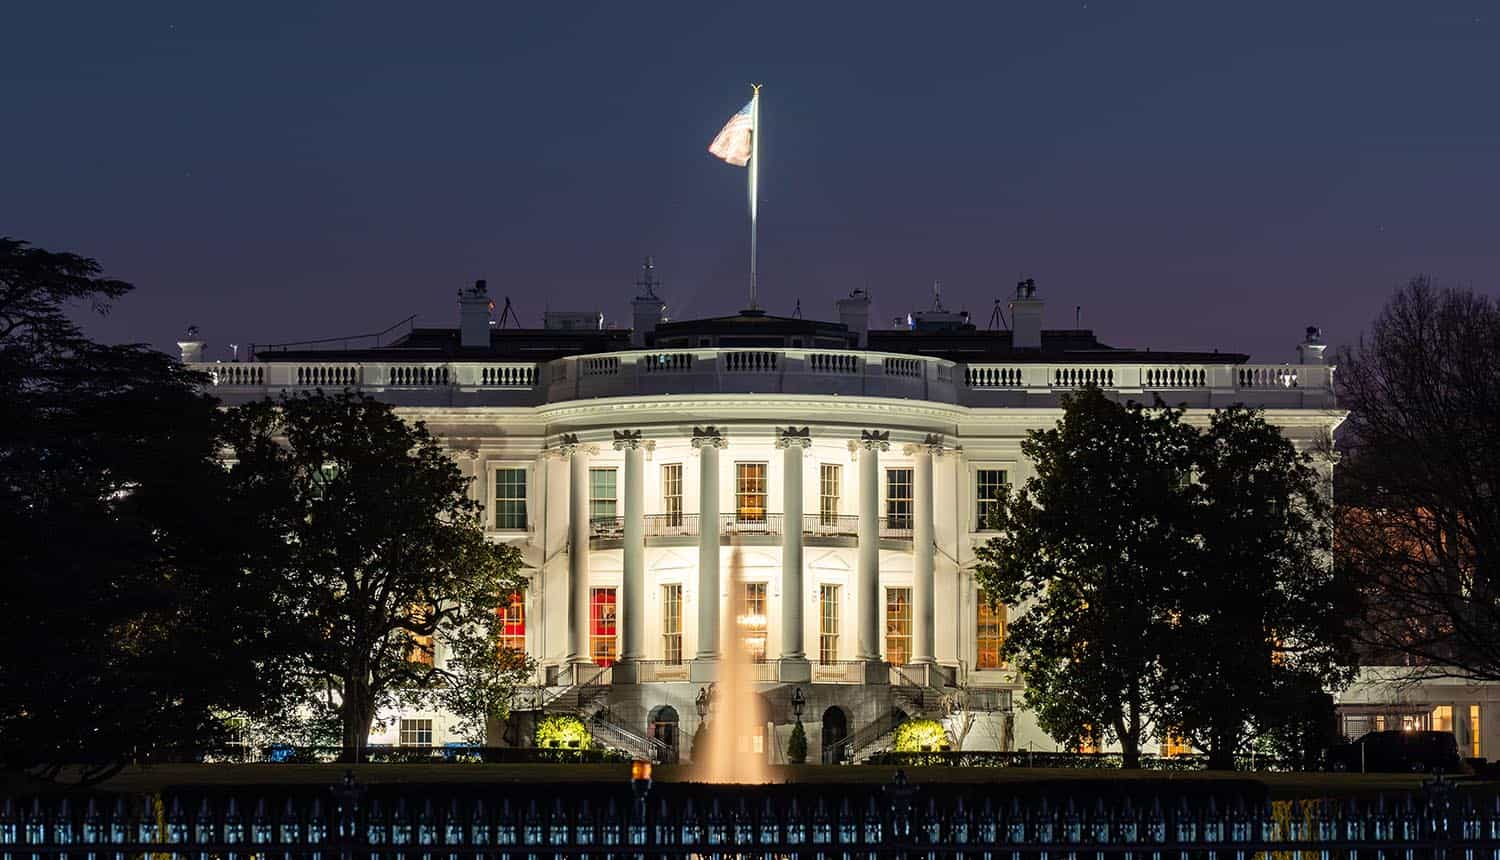 White House in Washington DC at night showing executive order to secure supply chain security and government contractors